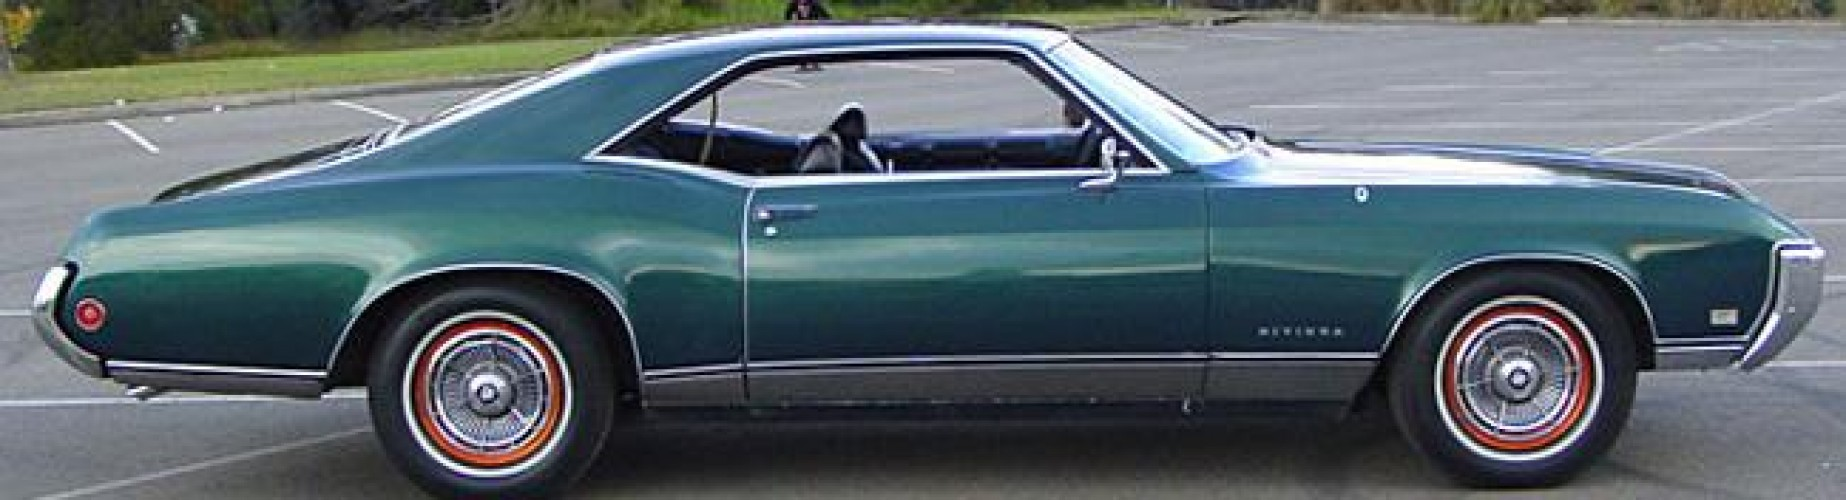 1969 Model Buick Riviera (Series 49487)